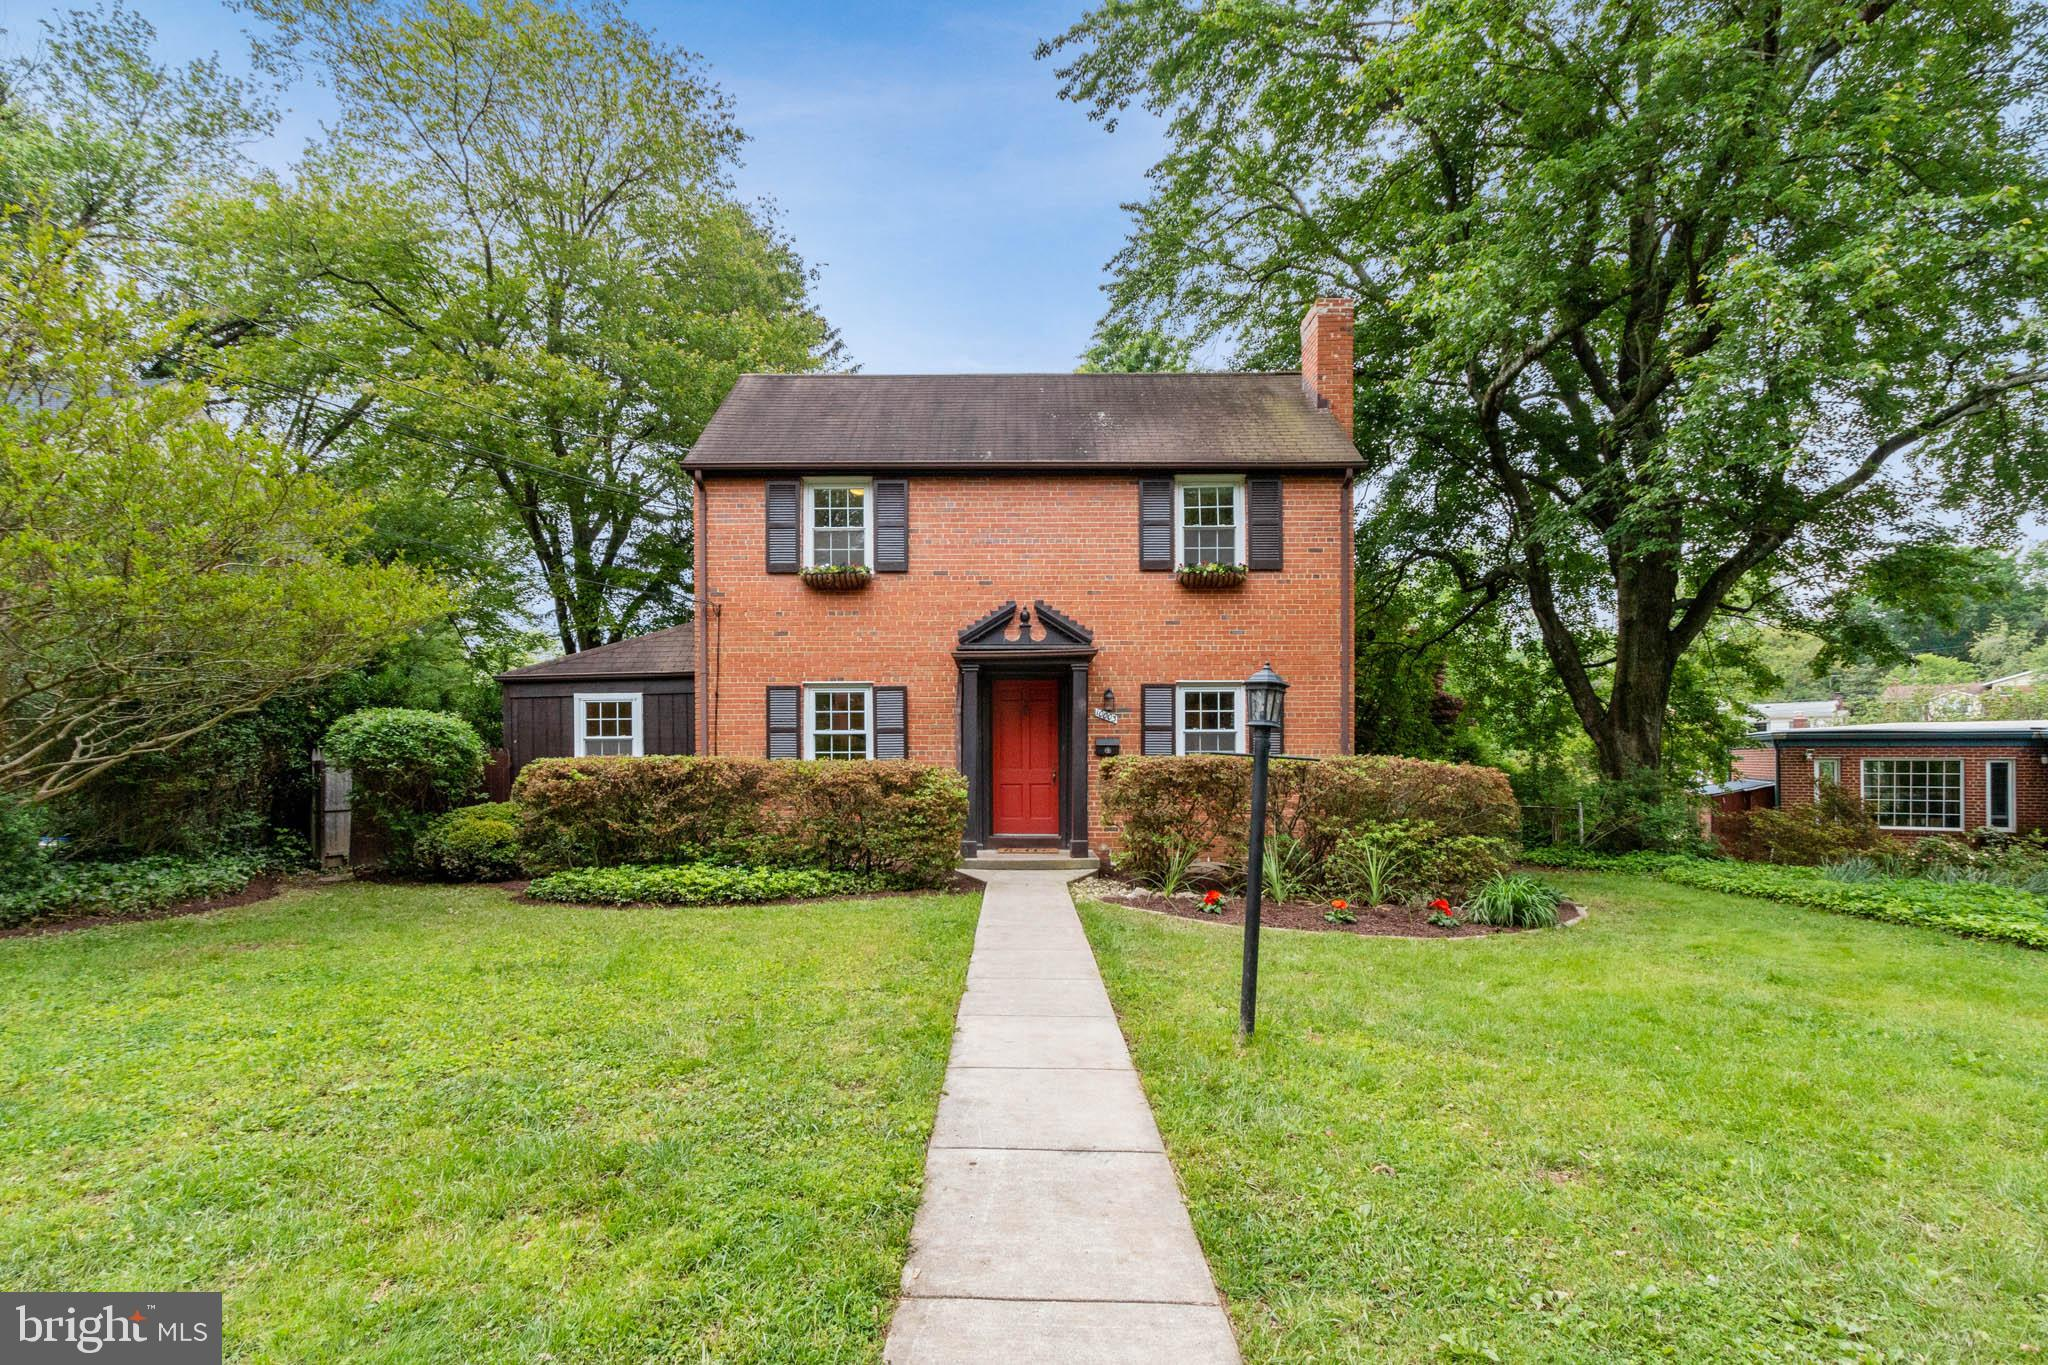 10003 FOREST GROVE DRIVE, SILVER SPRING, MD 20902